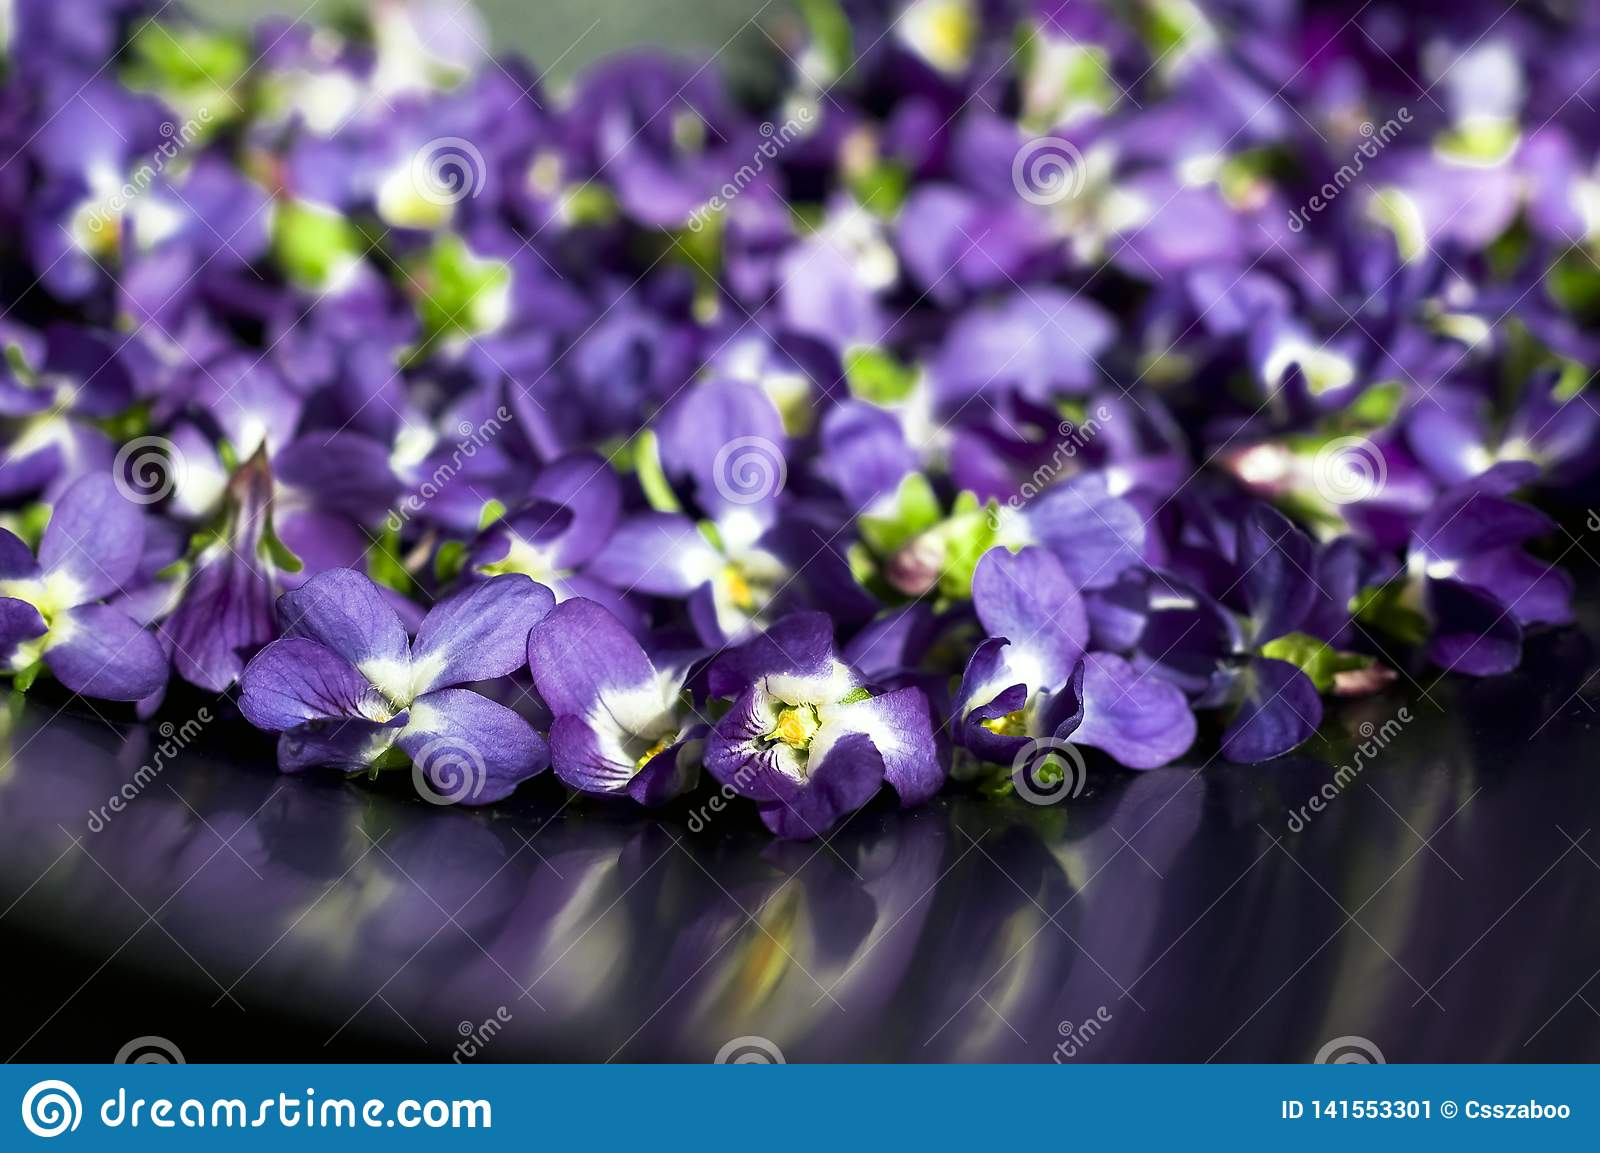 Spectacular, colorful early spring flowers in sunshine in the garden, selective focus, space for text